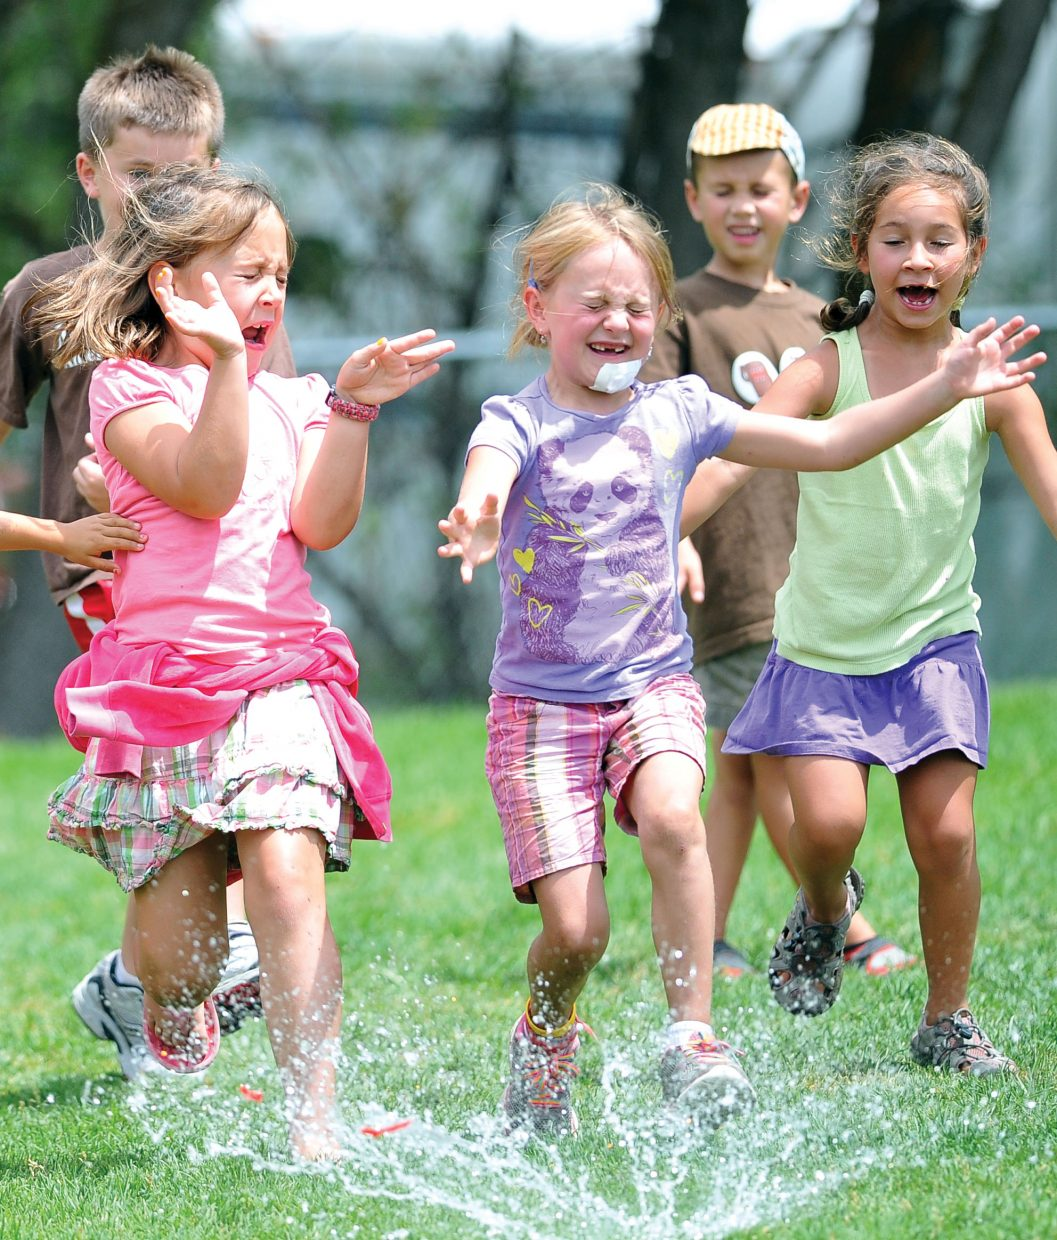 Campers Grace Alfone, right, and Charley Lodwick get splashed by a water balloon during the second annual Camp Olympics at Soda Creek Elementary School on Tuesday afternoon.